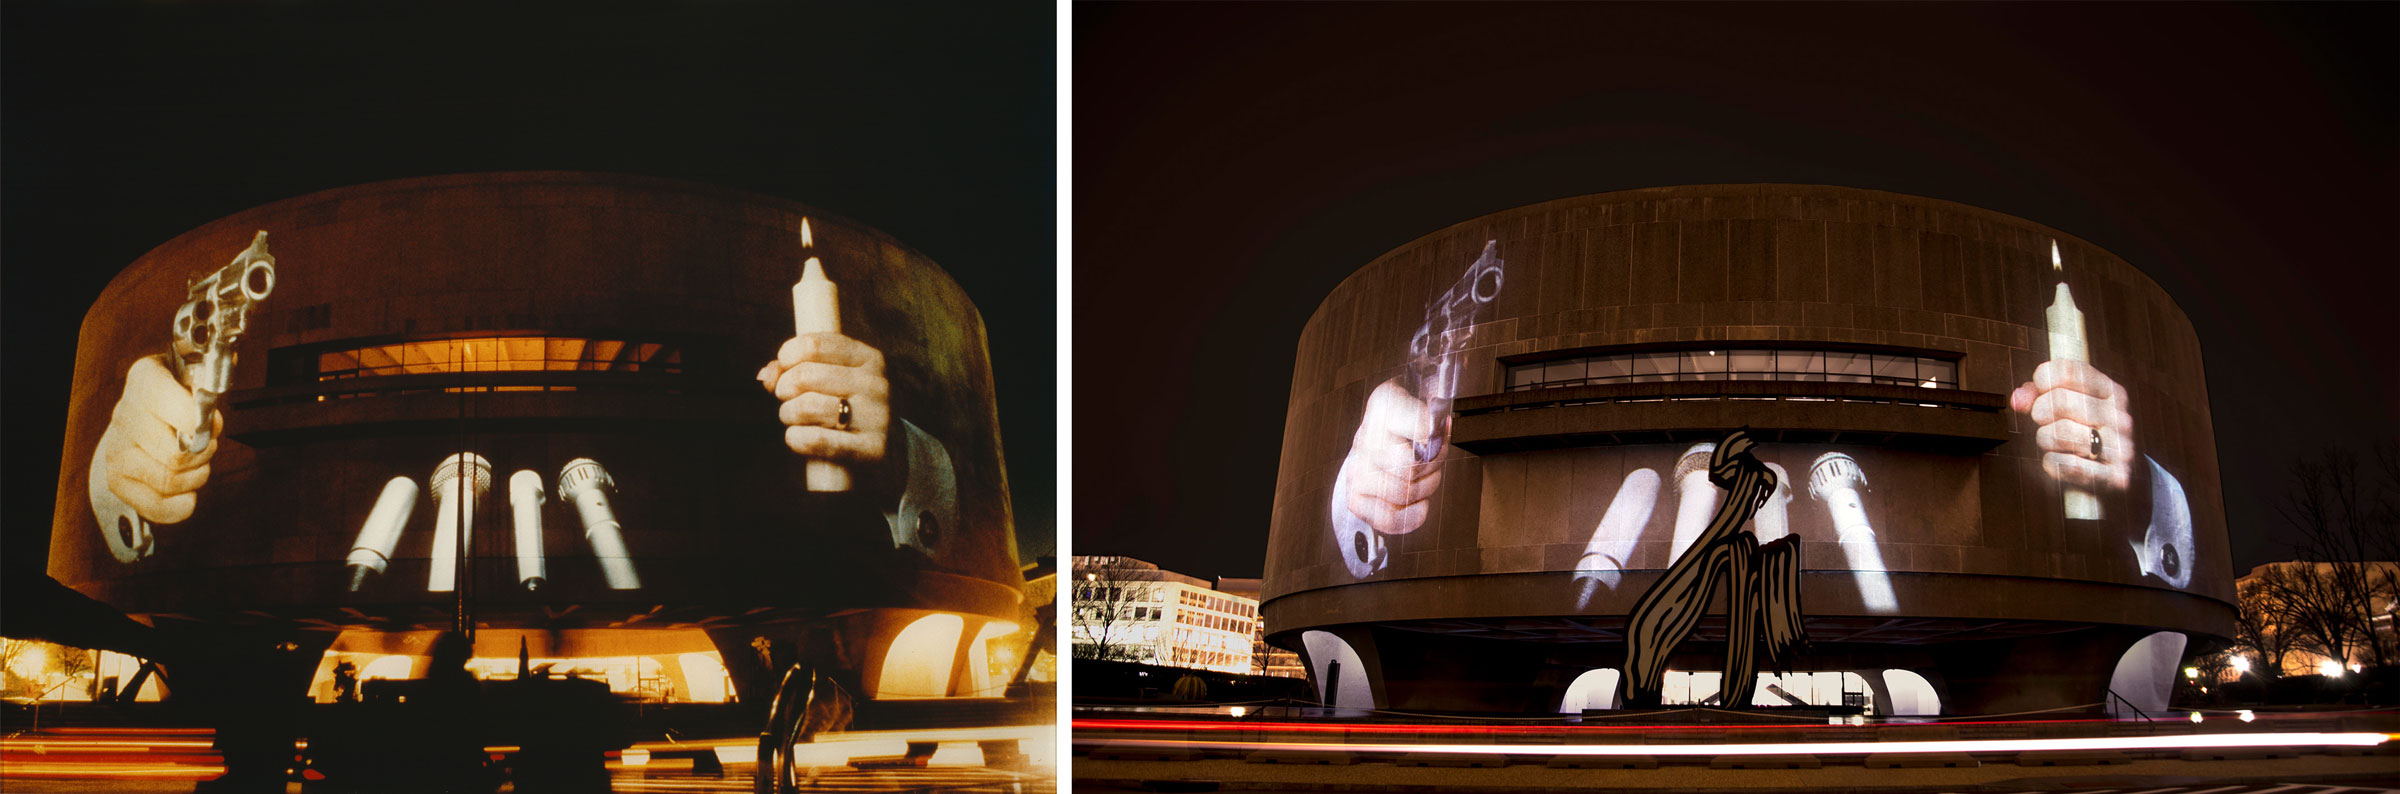 (left) Krzysztof Wodiczko, Hirshhorn Museum, Washington, DC, 1988. Public projection at the Hirshhorn Museum, Washington, DC, October 25-27, 1988. Courtesy the artist and Galerie Lelong, New York. (right) Krzysztof Wodiczko, Hirshhorn Museum, Washington, DC, 1988. Public projection at the Hirshhorn Museum, Washington, DC, February 13, 2018. Courtesy the artist and Galerie Lelong, New York. Photo: Joshua Jest